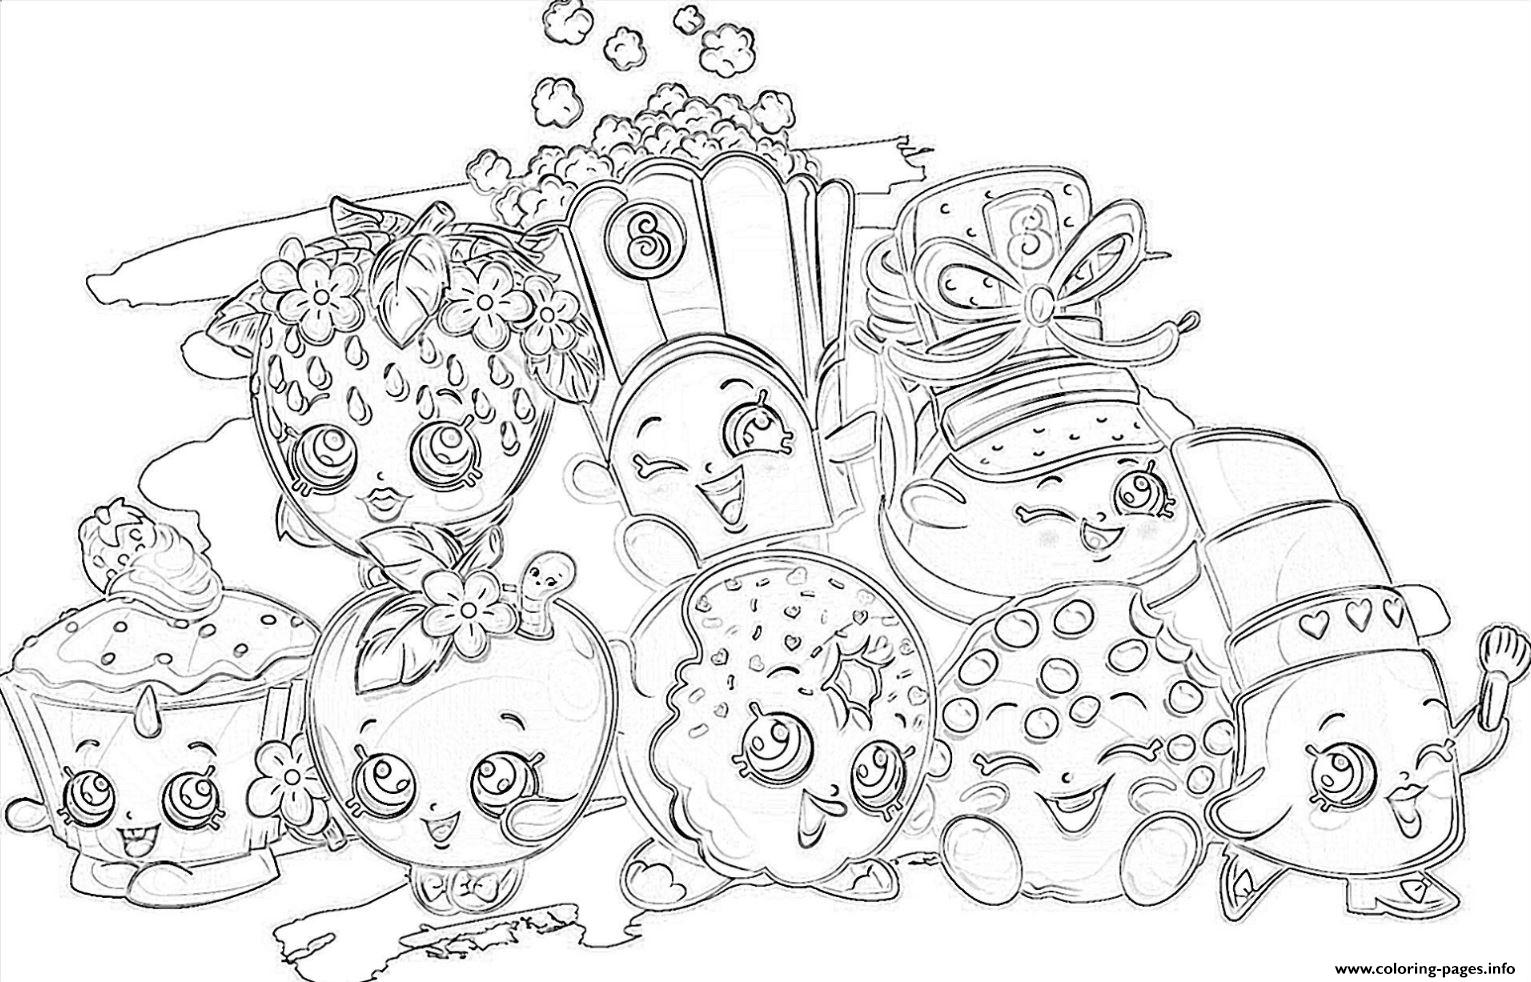 Shopkins All The Family Coloring Pages Print Download 600 Prints